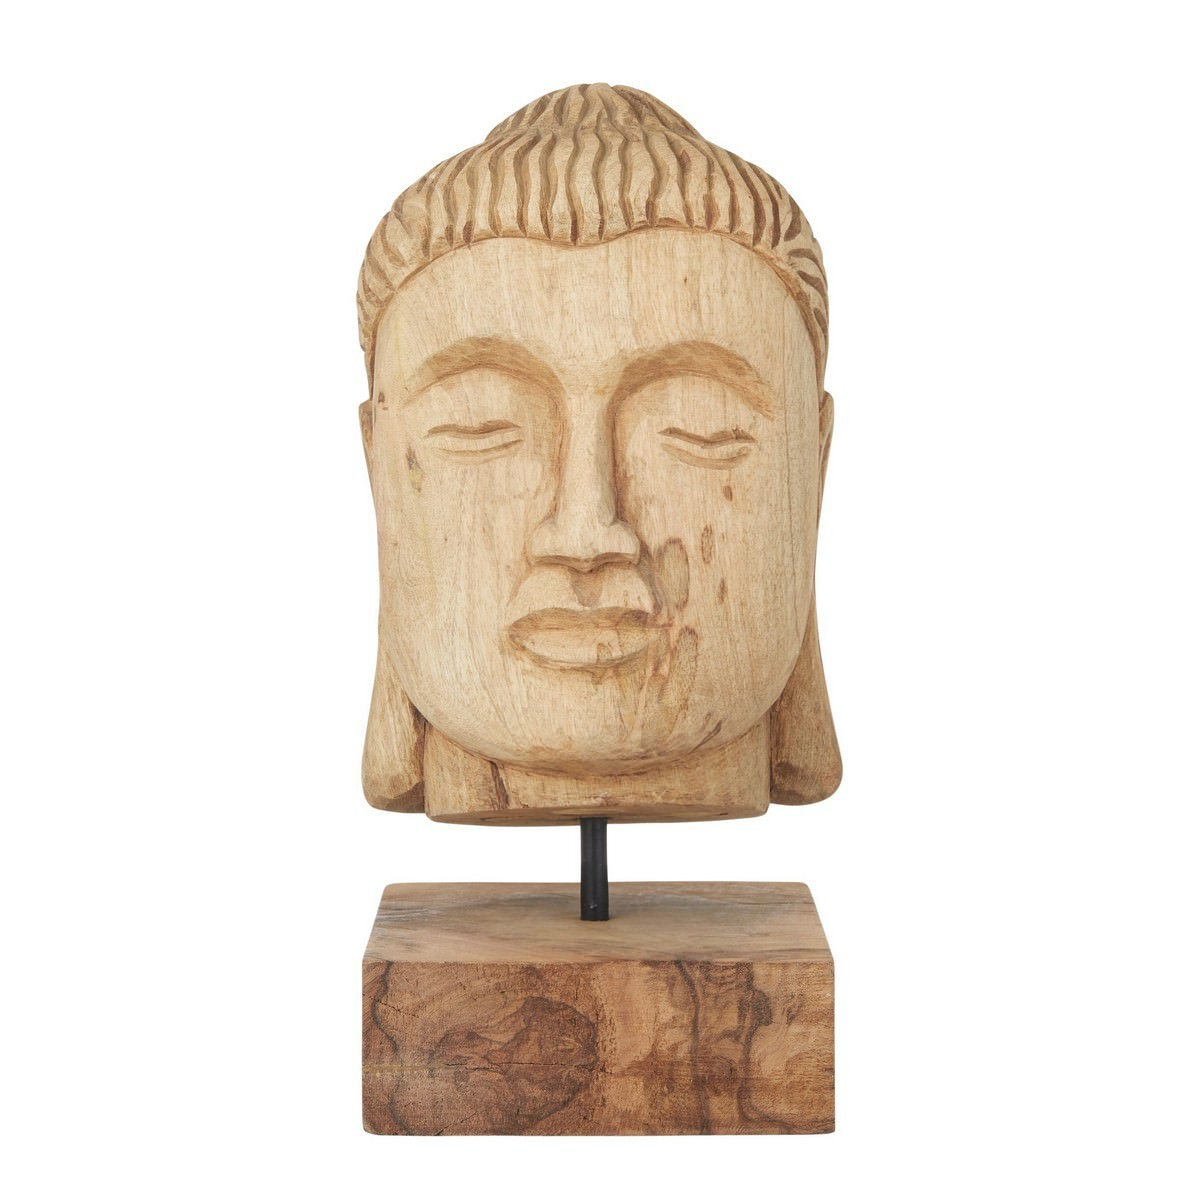 Arkar Carved Mango Wood Buddha Head Sculpture